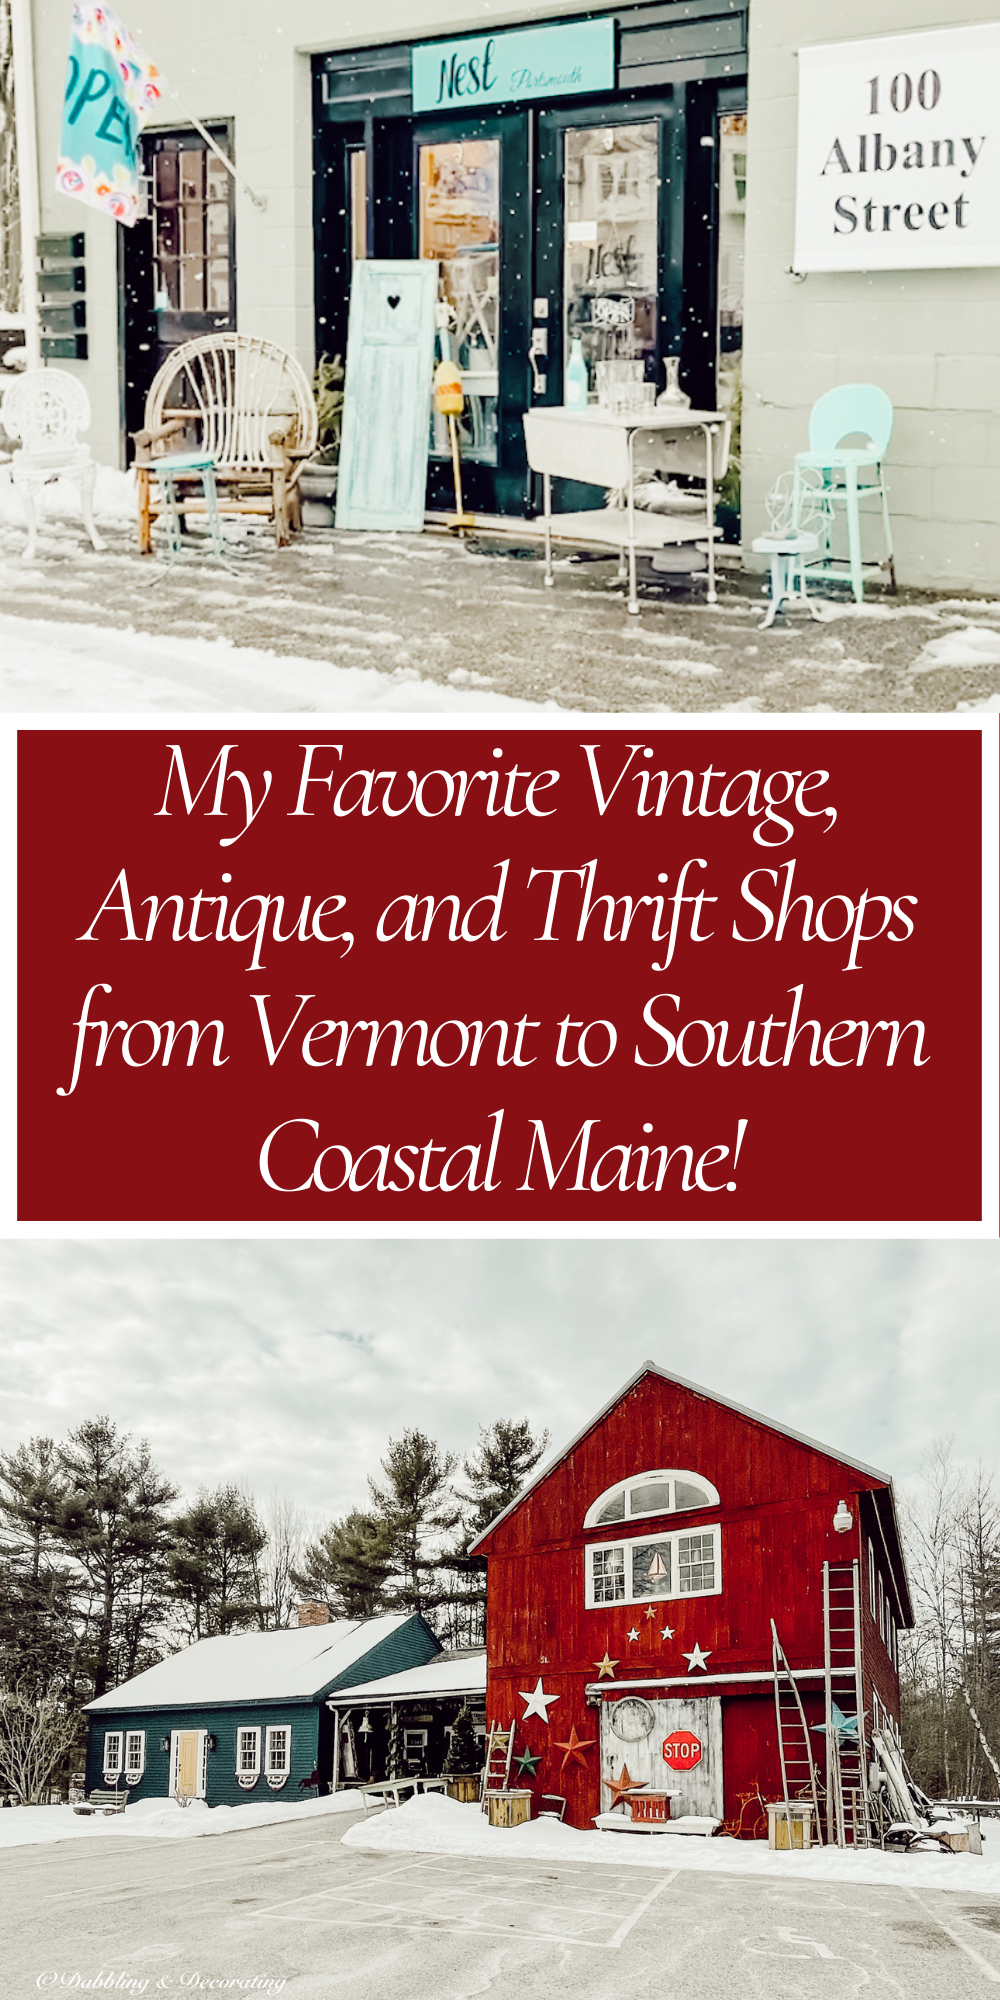 My Favorite Vintage, Antique, and Thrift Shops from Vermont to Southern Coastal Maine